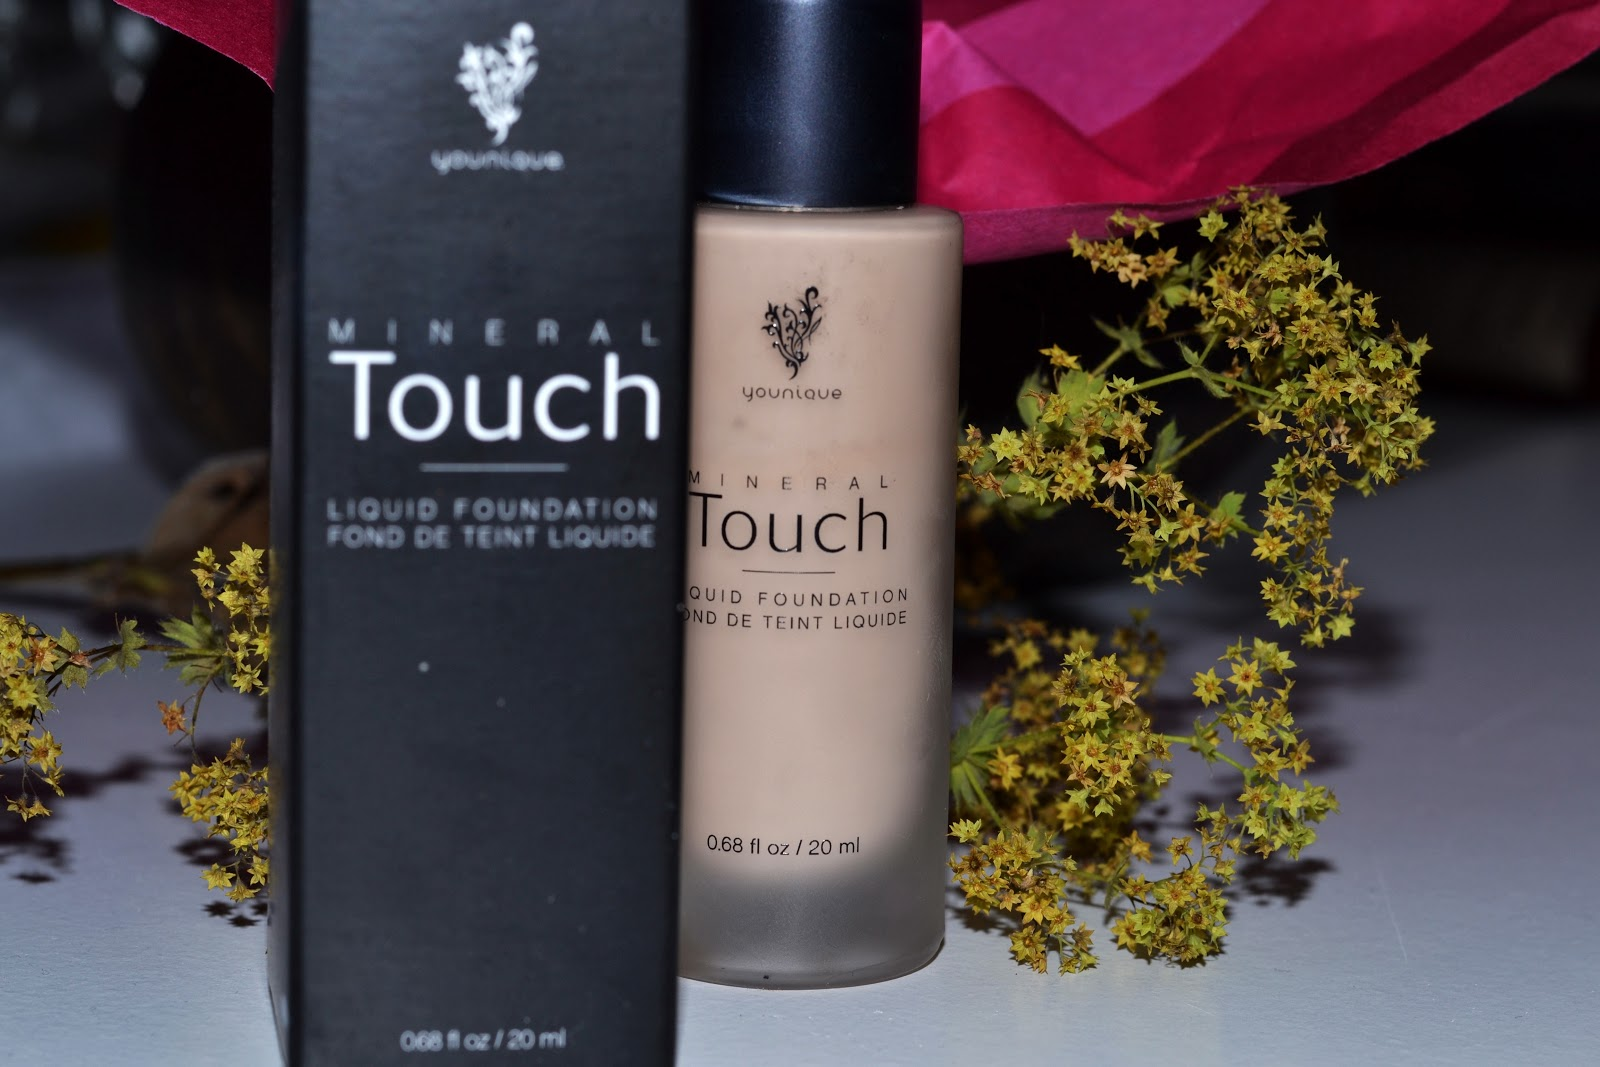 [REVIEW] Younique mineral touch liquid foundation ...